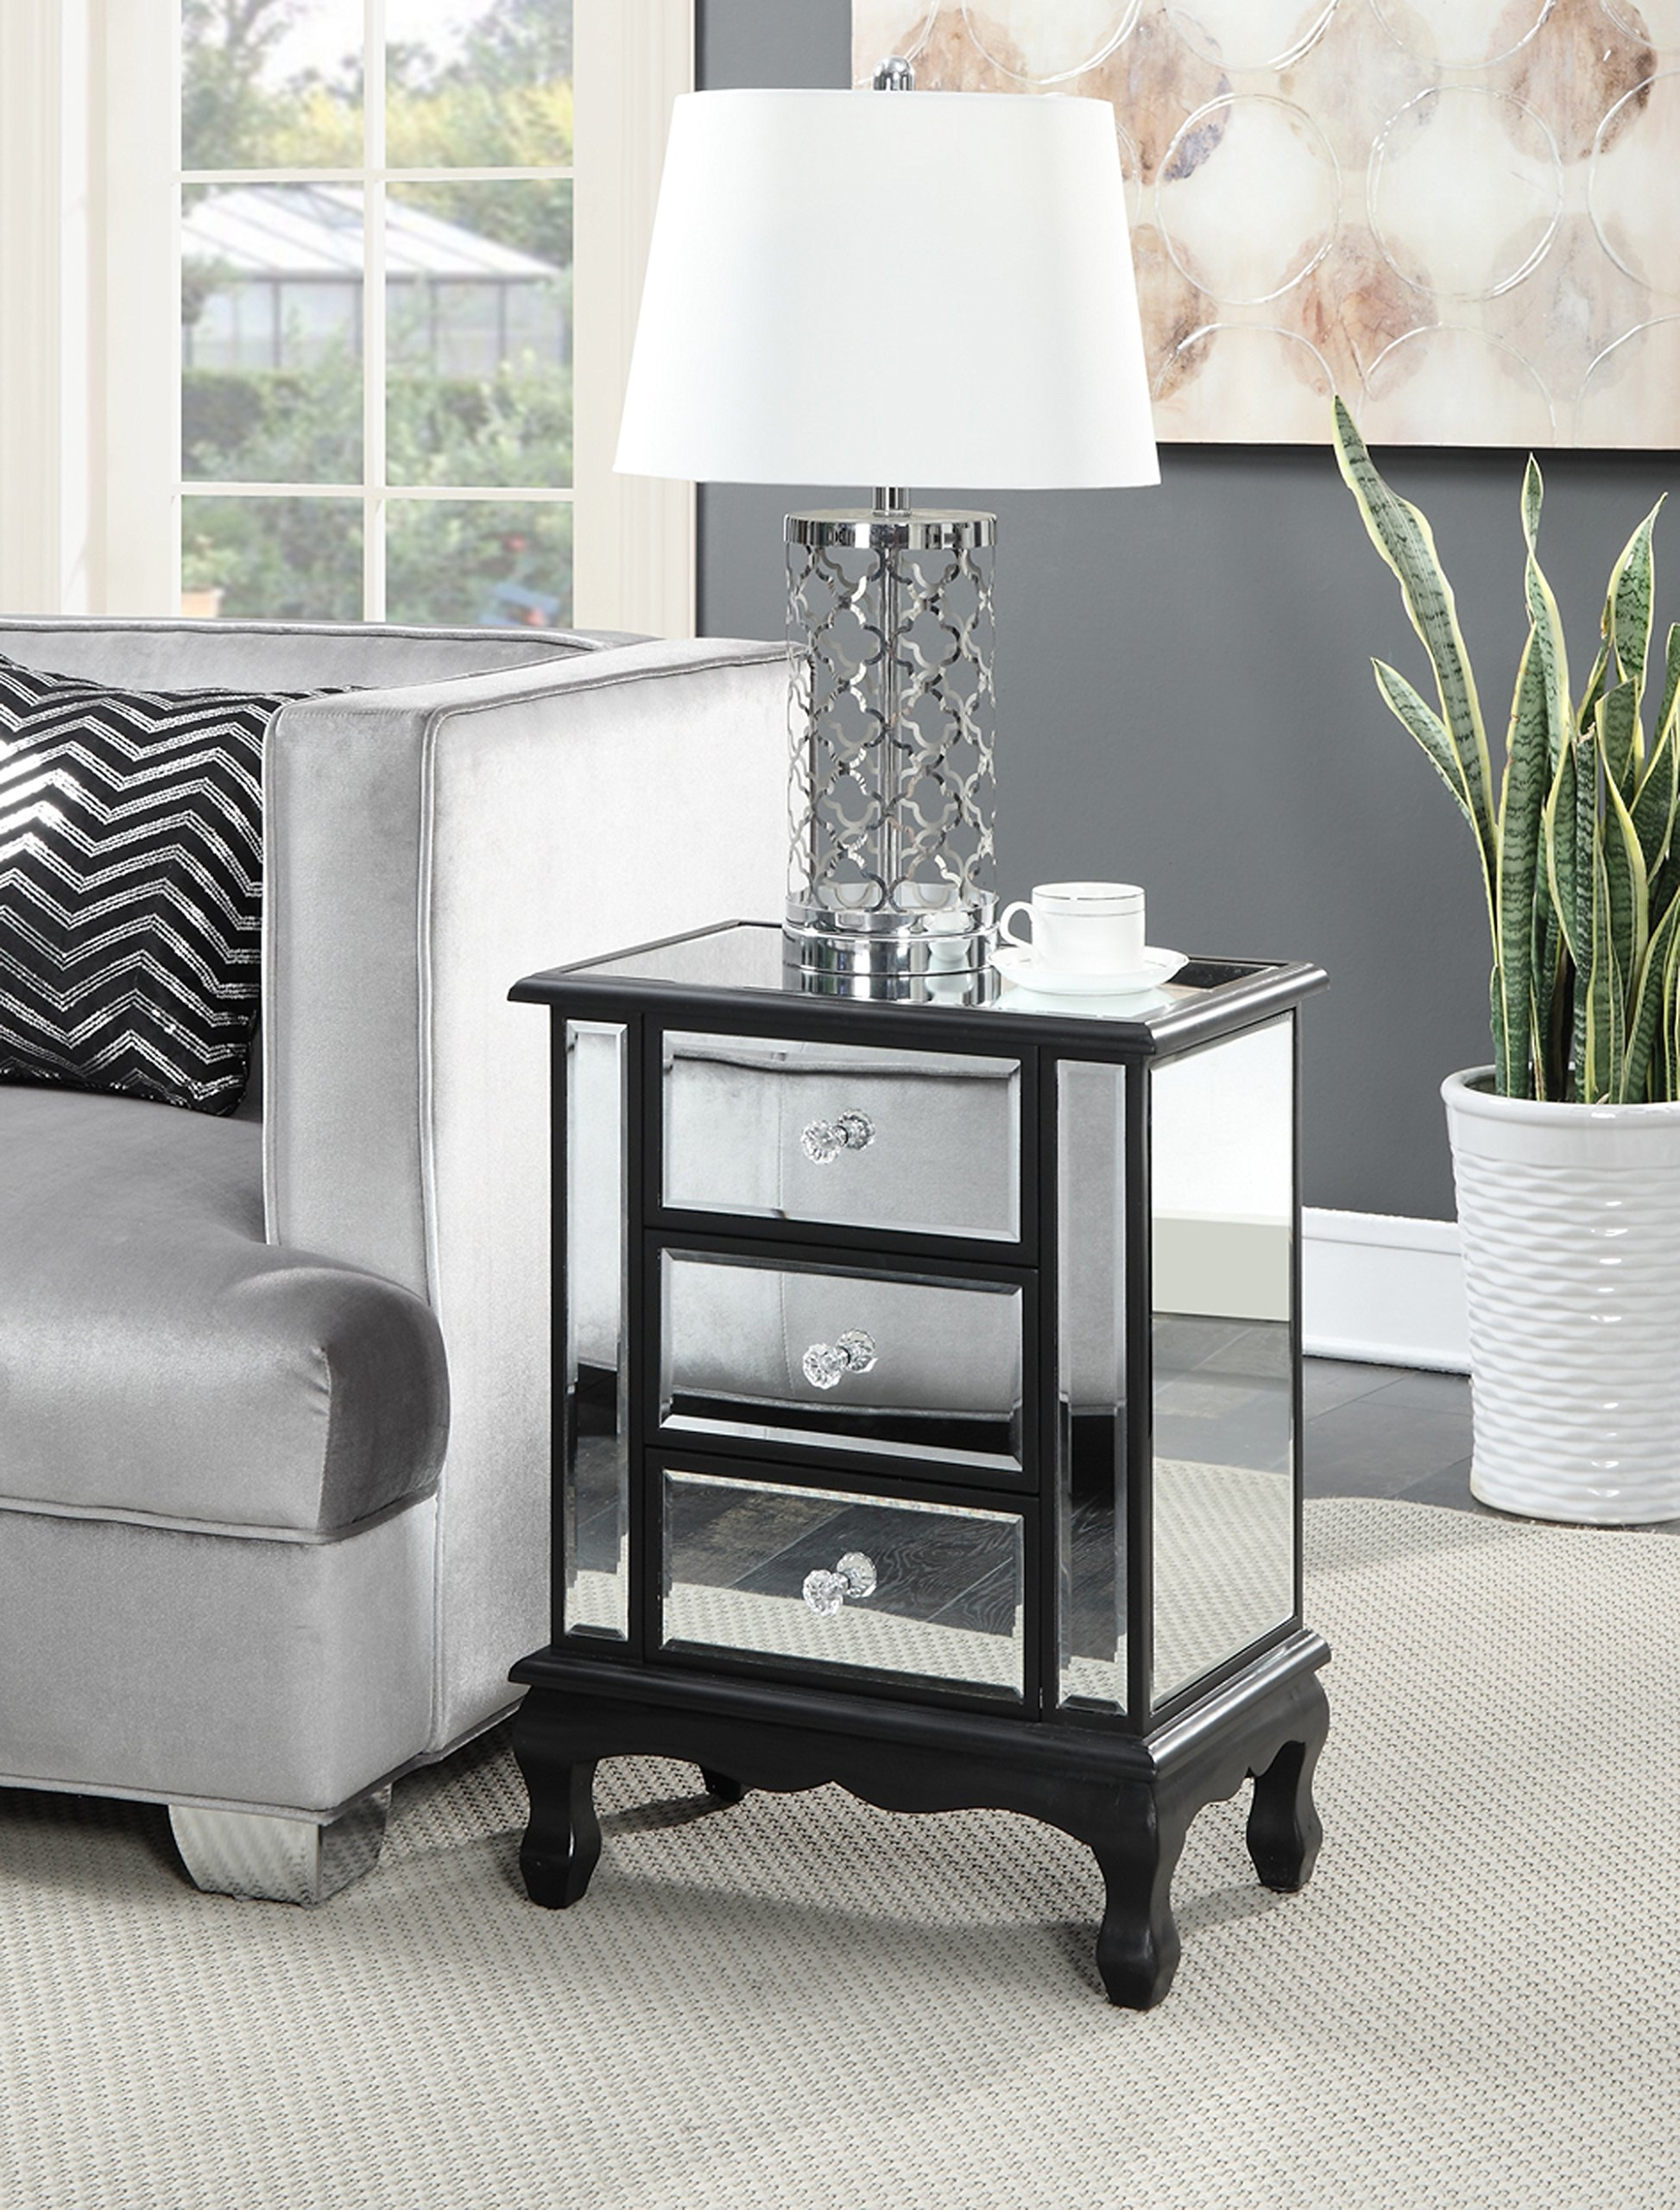 Convenience Concepts Gold Coast Vineyard 3 Drawer Mirrored End Table, Black